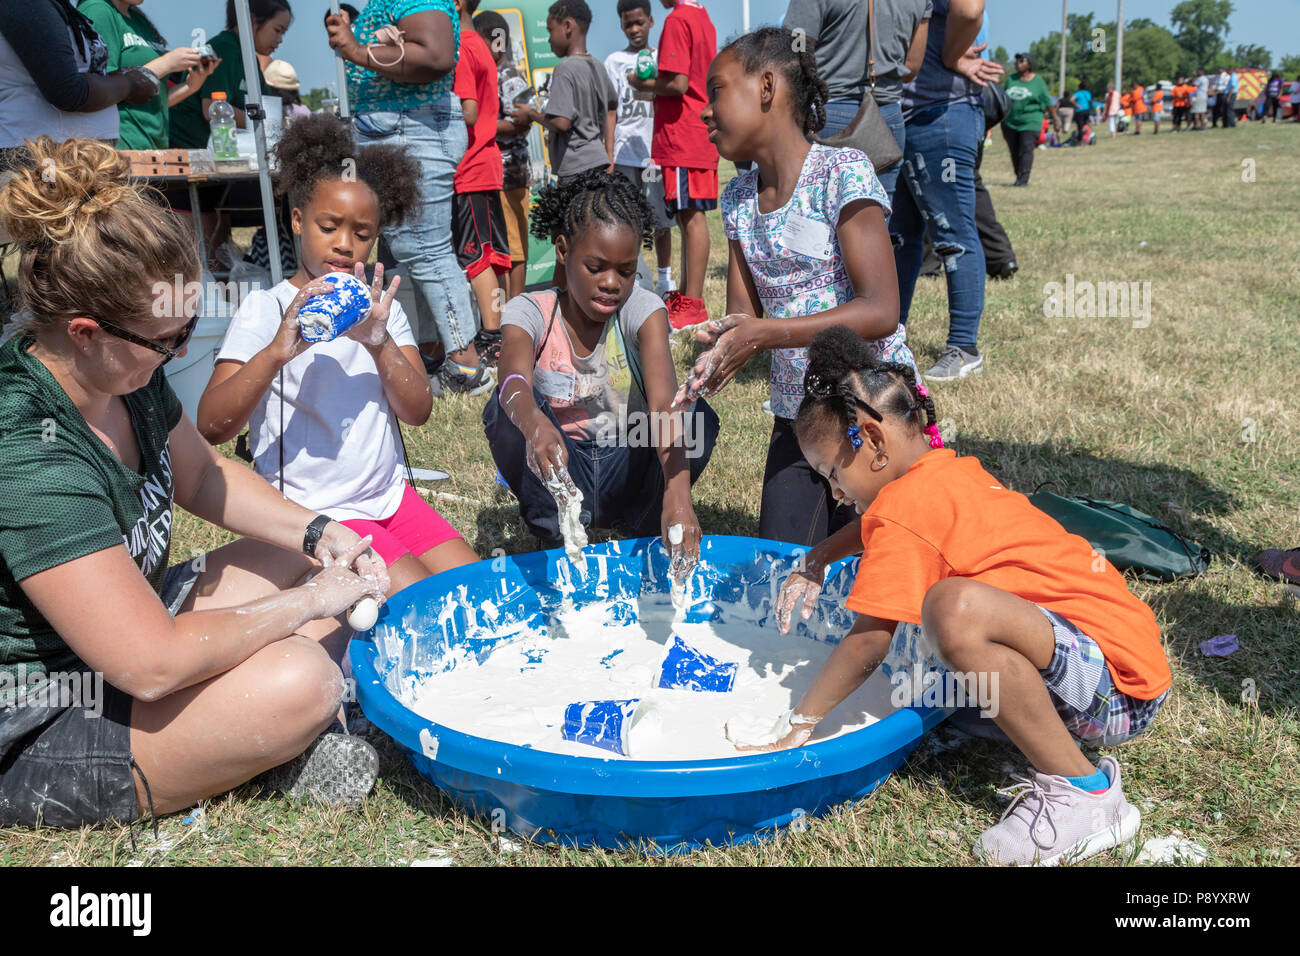 Detroit, Michigan - Children play with oobleck (cornstarch and water) at Michigan State University's booth during Metro Detroit Youth Day. Thousands o - Stock Image